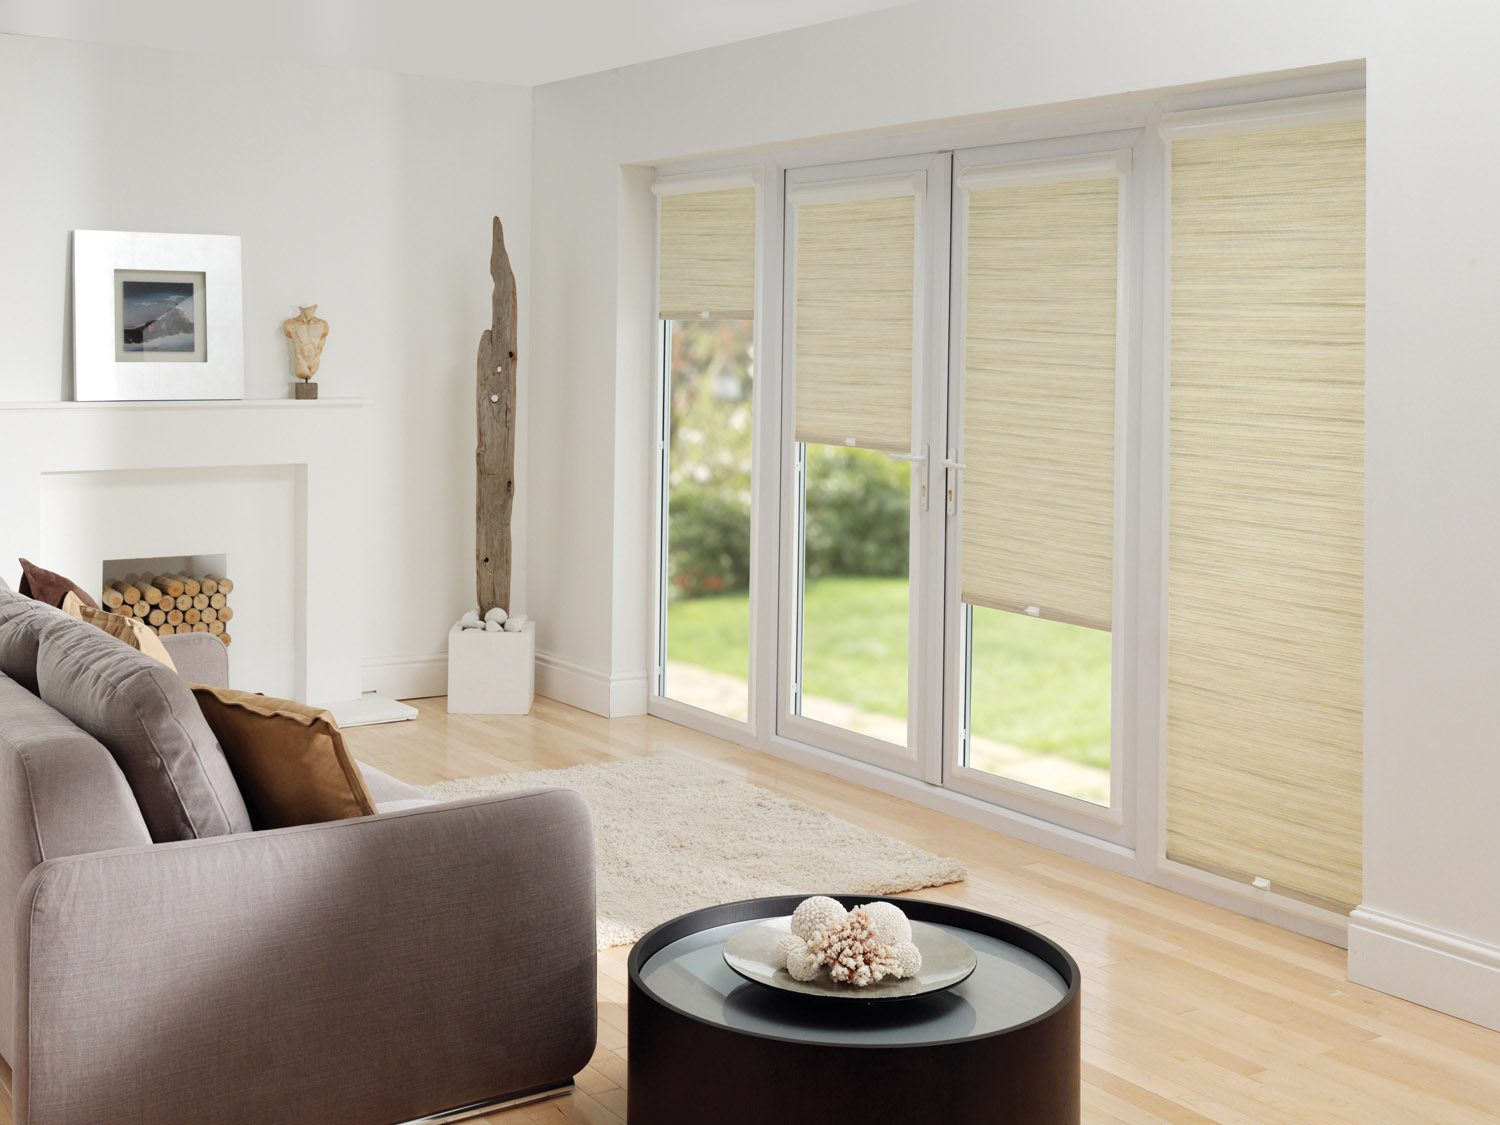 UPVC doors and window blinds